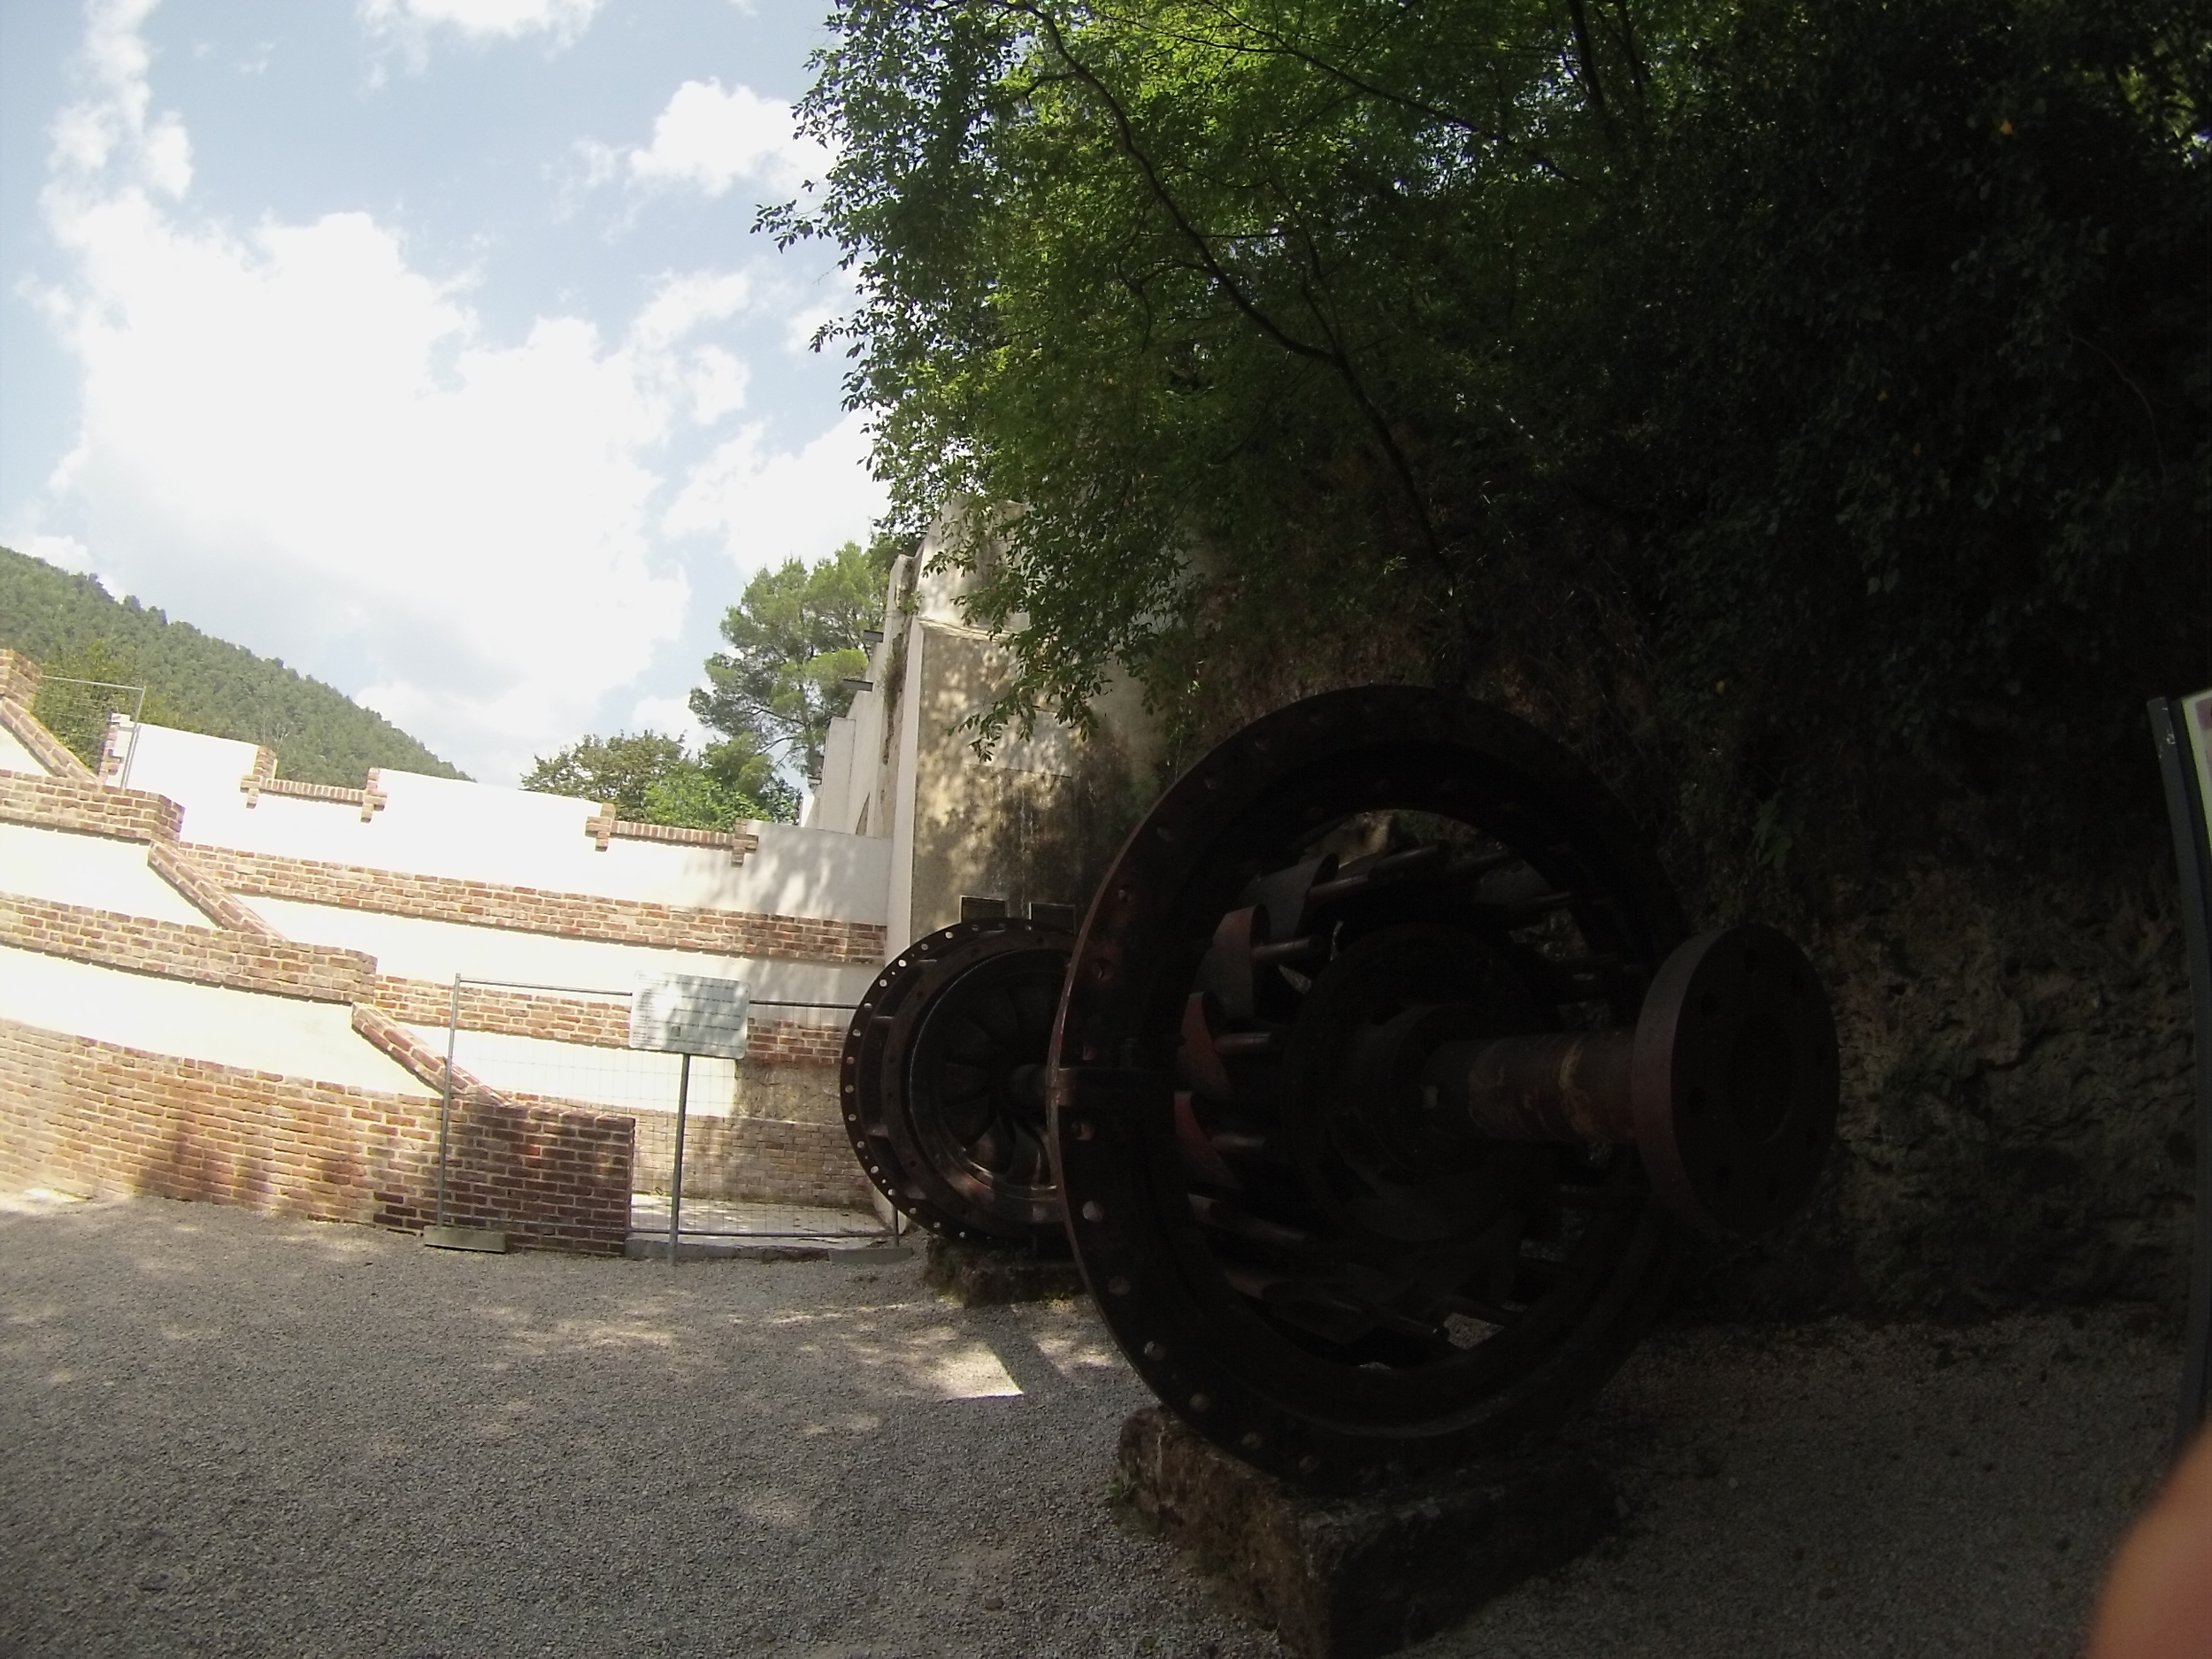 One of the old turbines at Jaruga Hydroelectric Power Plant.